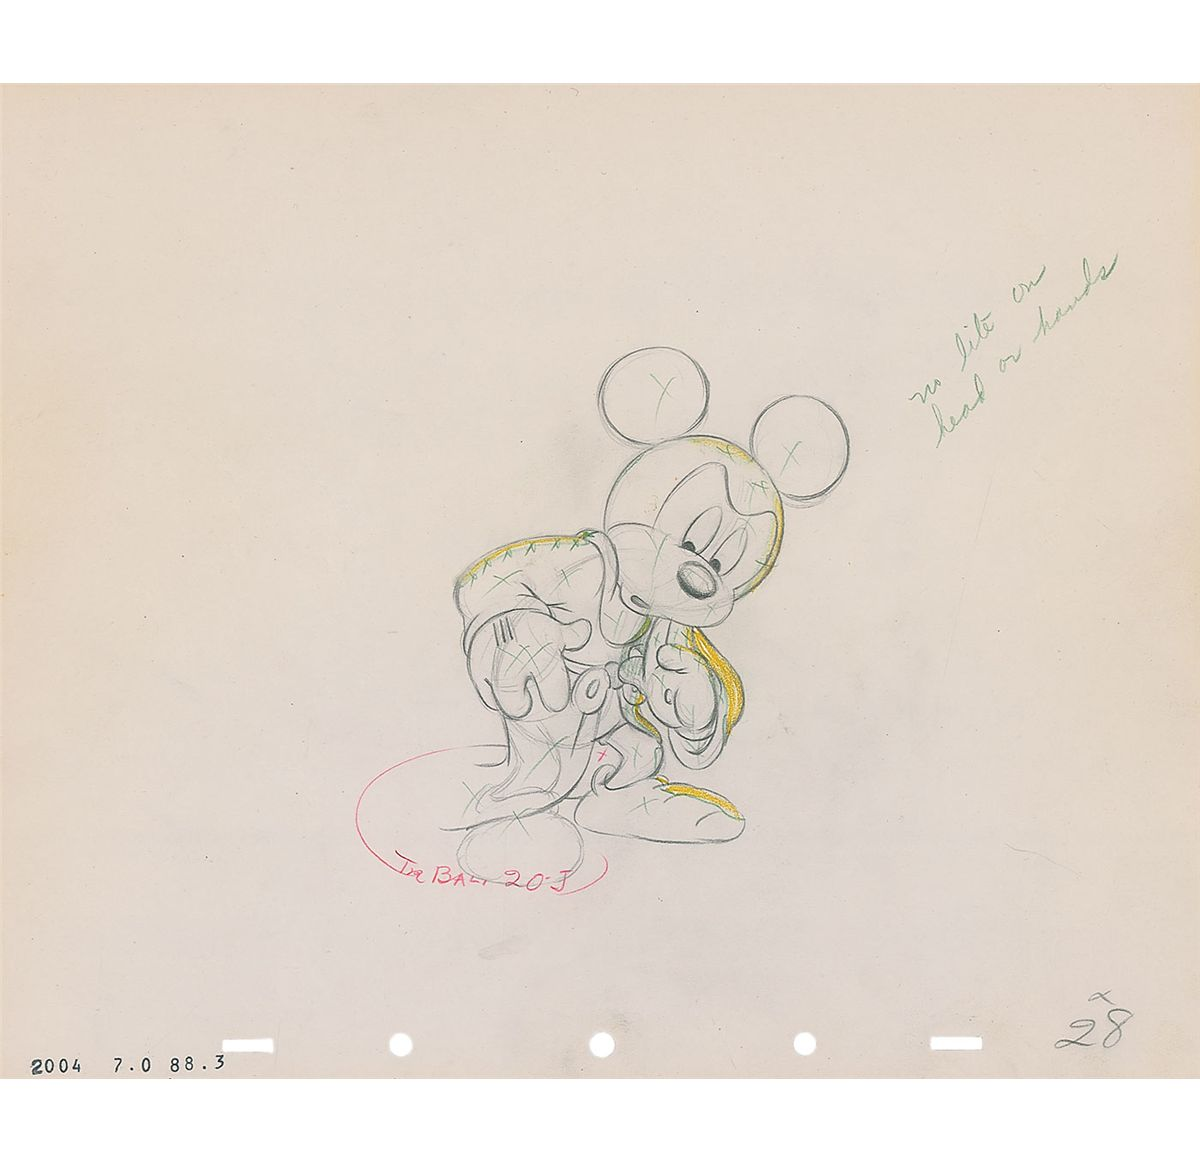 Image 1 mickey mouse as the sorcerers apprentice production drawing from fantasia